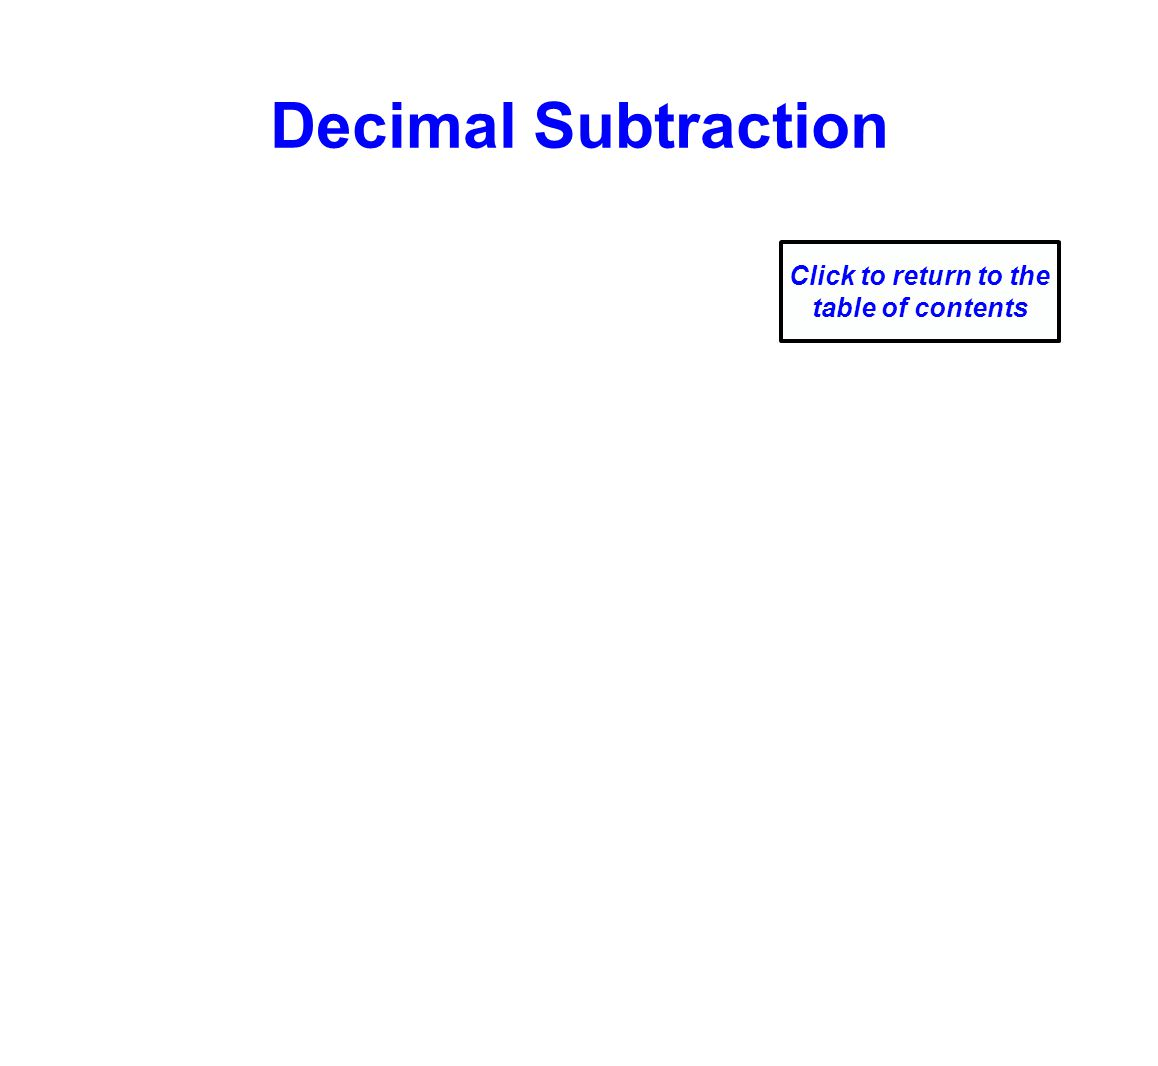 Decimal Subtraction Click to return to the table of contents